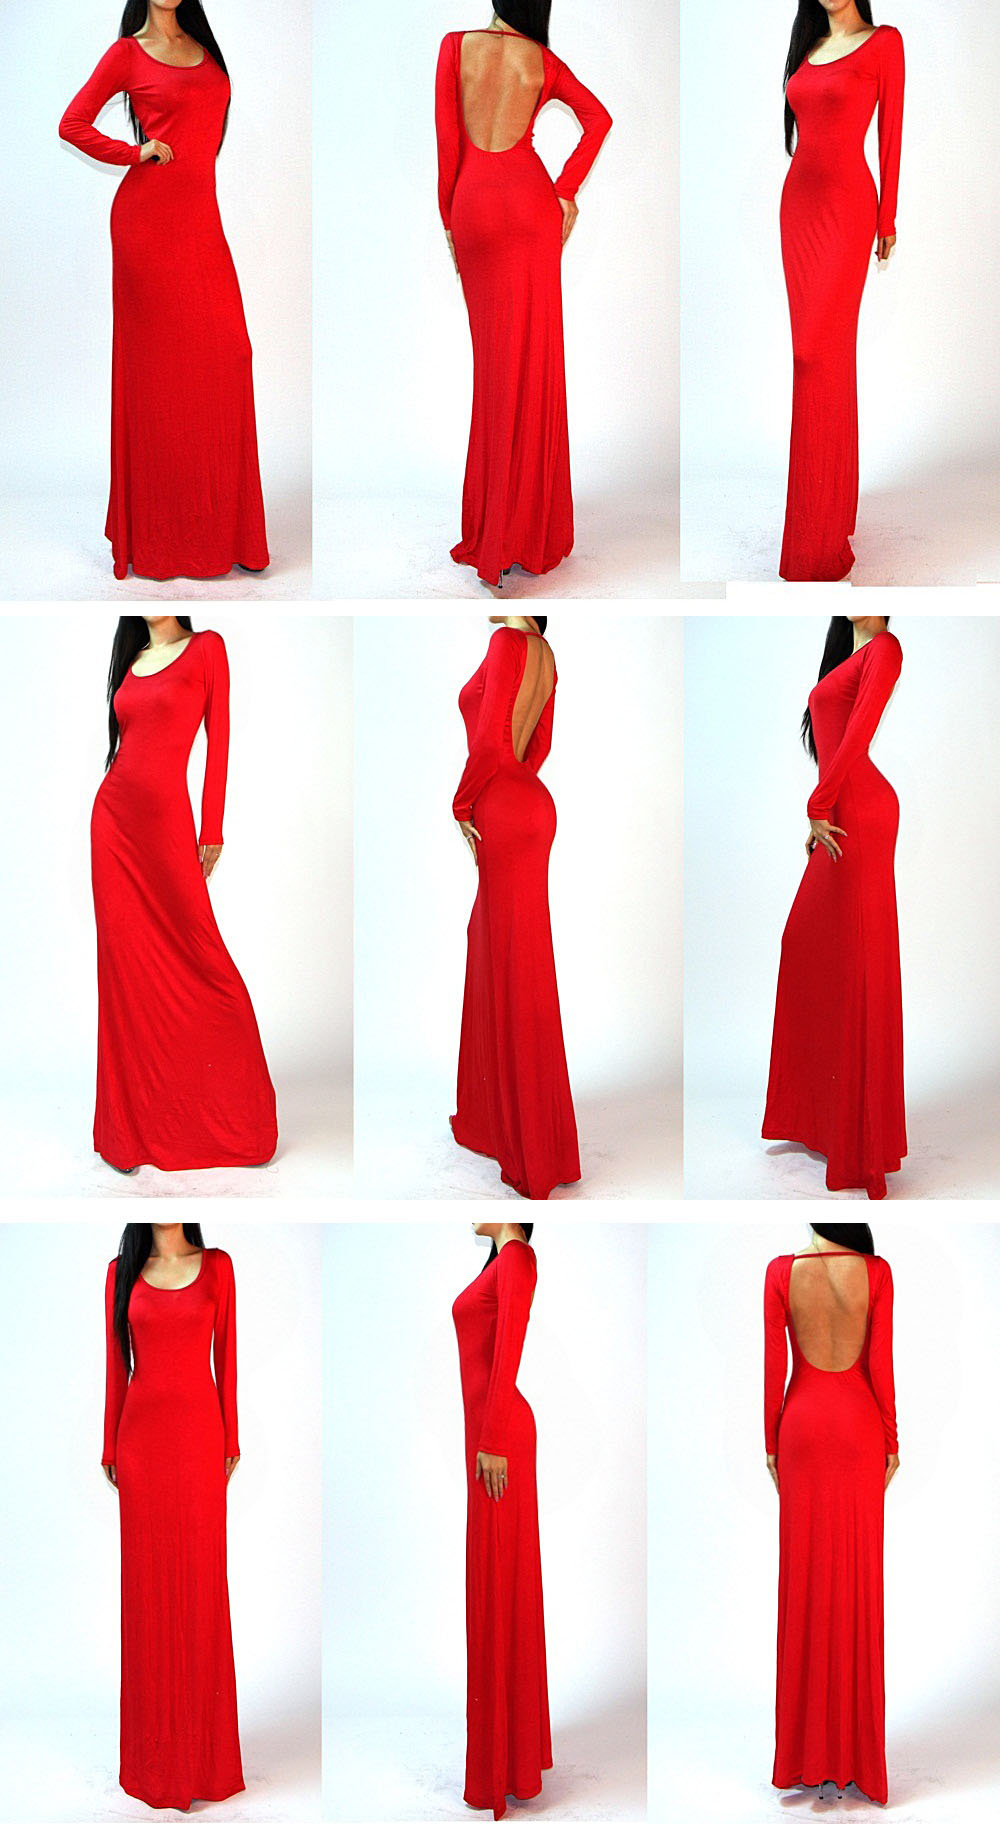 Sexy Long Sleeves Backless Open Cutout Back Slip Jersey Long Maxi Dress s M L | eBay